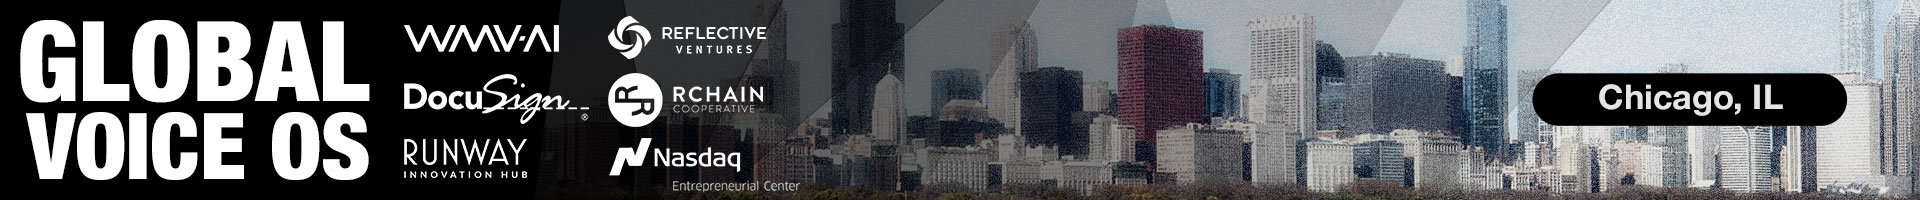 Event-Global-Voice-OS-1920x200-Chicago-IL